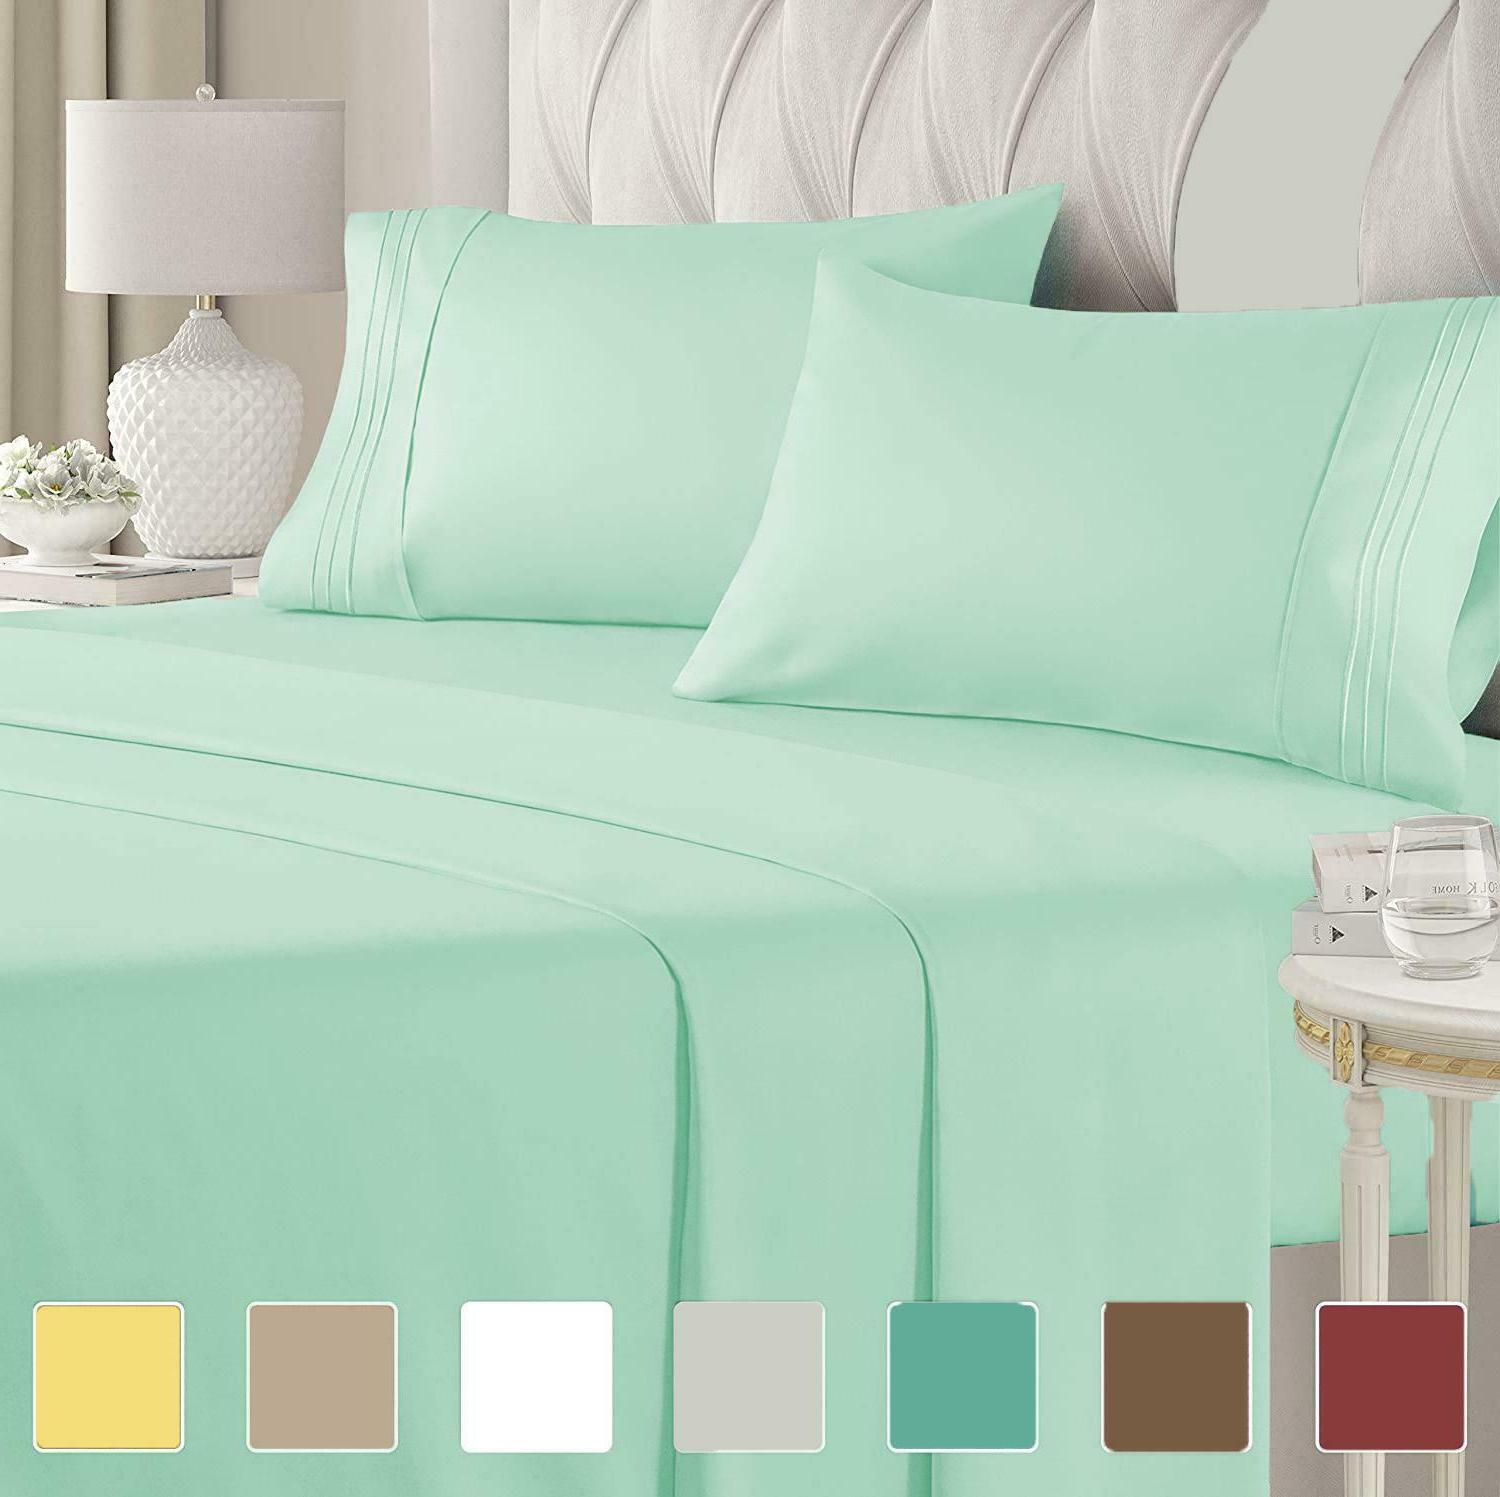 ⭐️⭐ ULTRA LUXURY COLLECTION COMFORT SET DEEP POCKET ALL COLORS!⭐️⭐